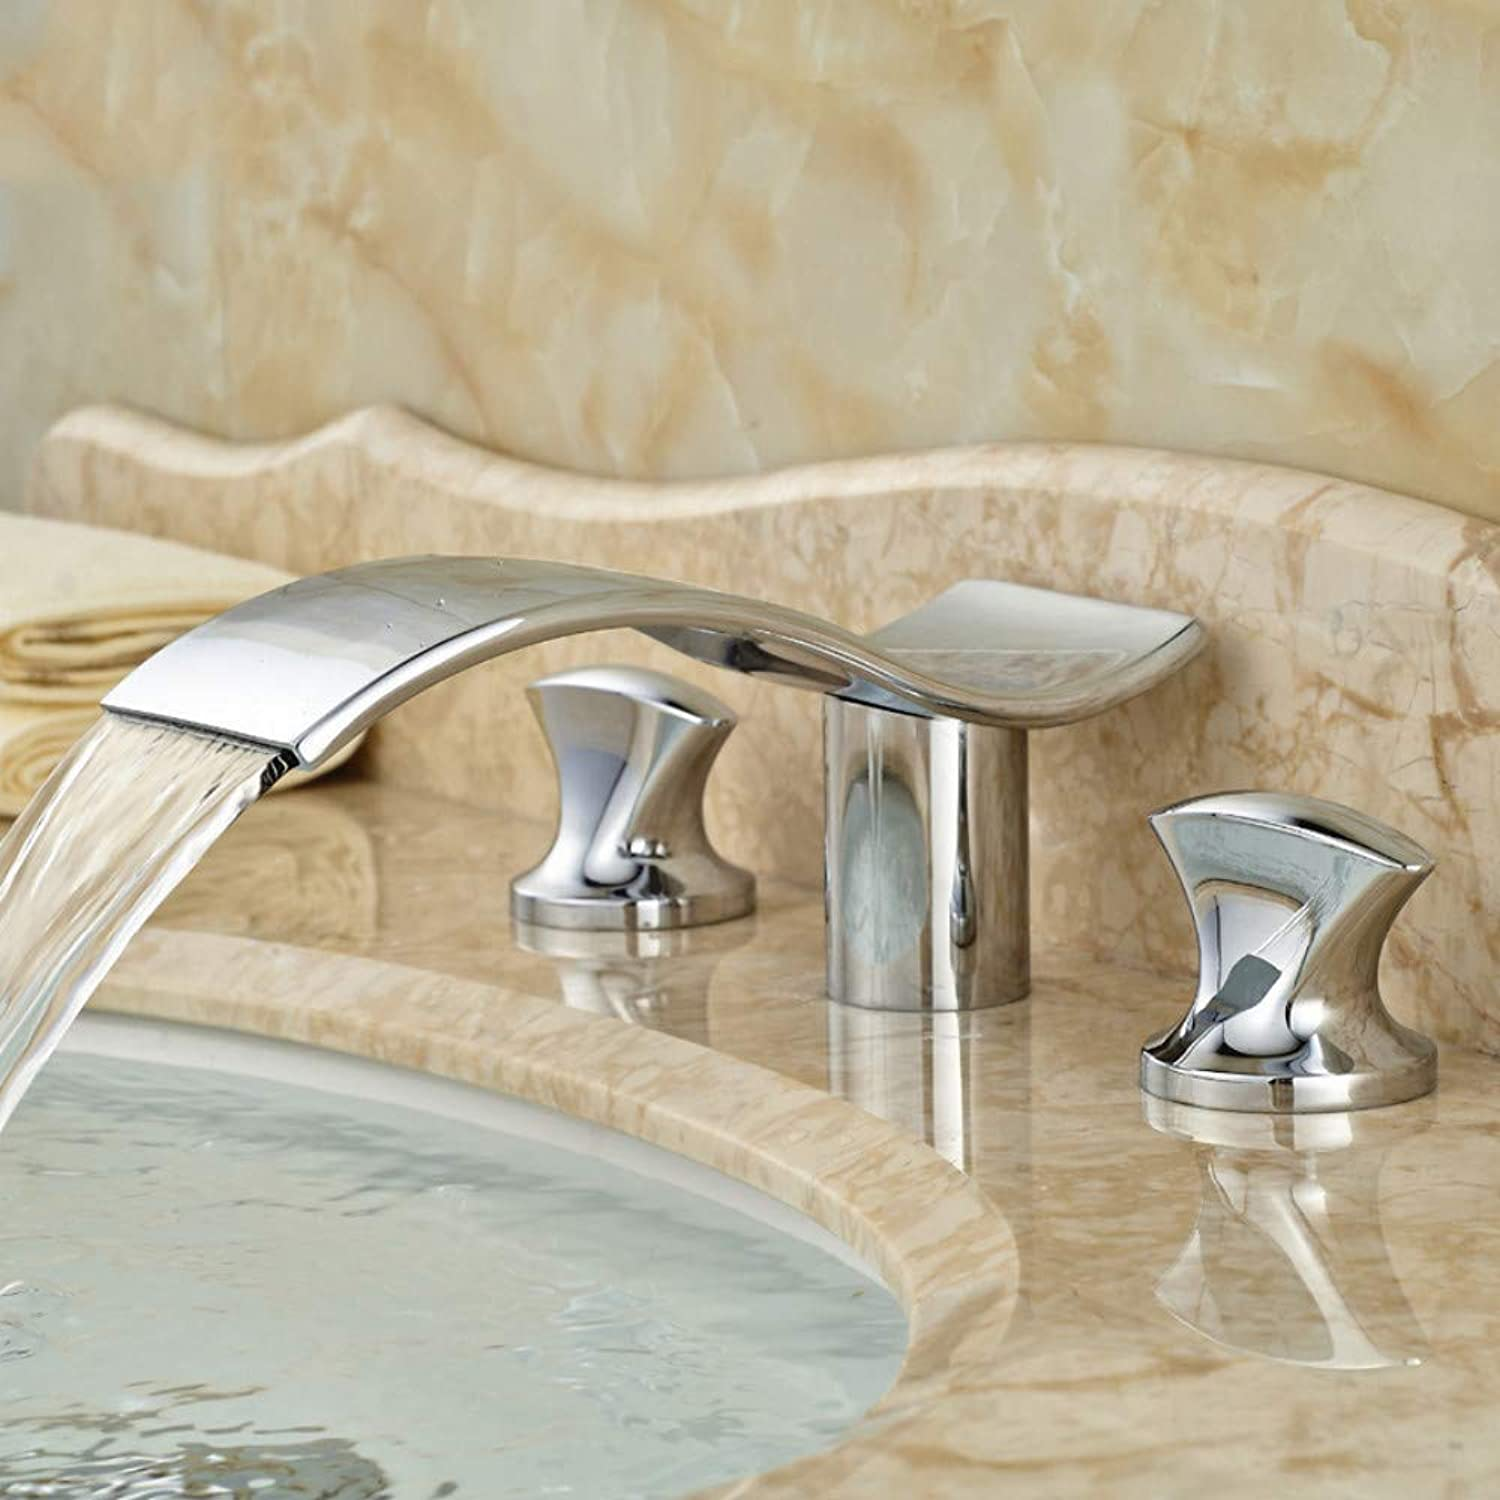 Ayhuir Dual Handle Luxury Bathroom Sink Faucet Chrome Finish Waterfall Basin Mixer Tap